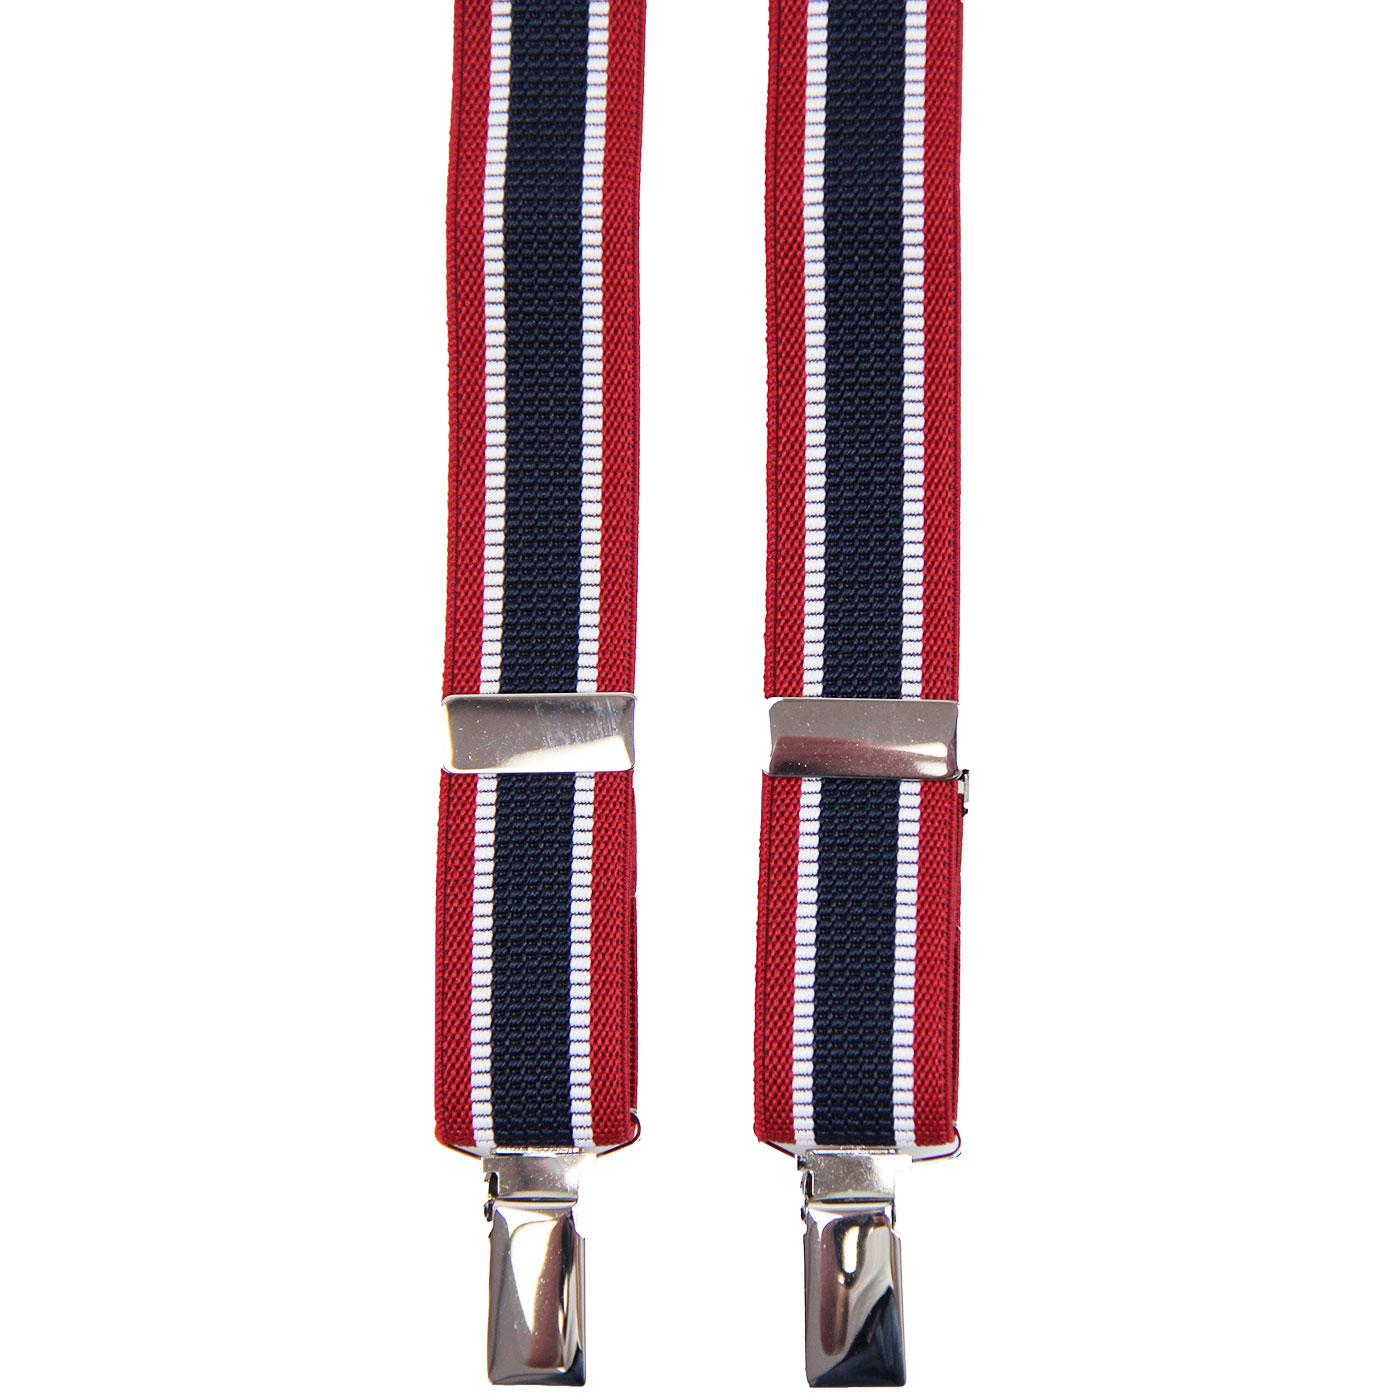 MADCAP ENGLAND Made in England Mod Stripe Braces R